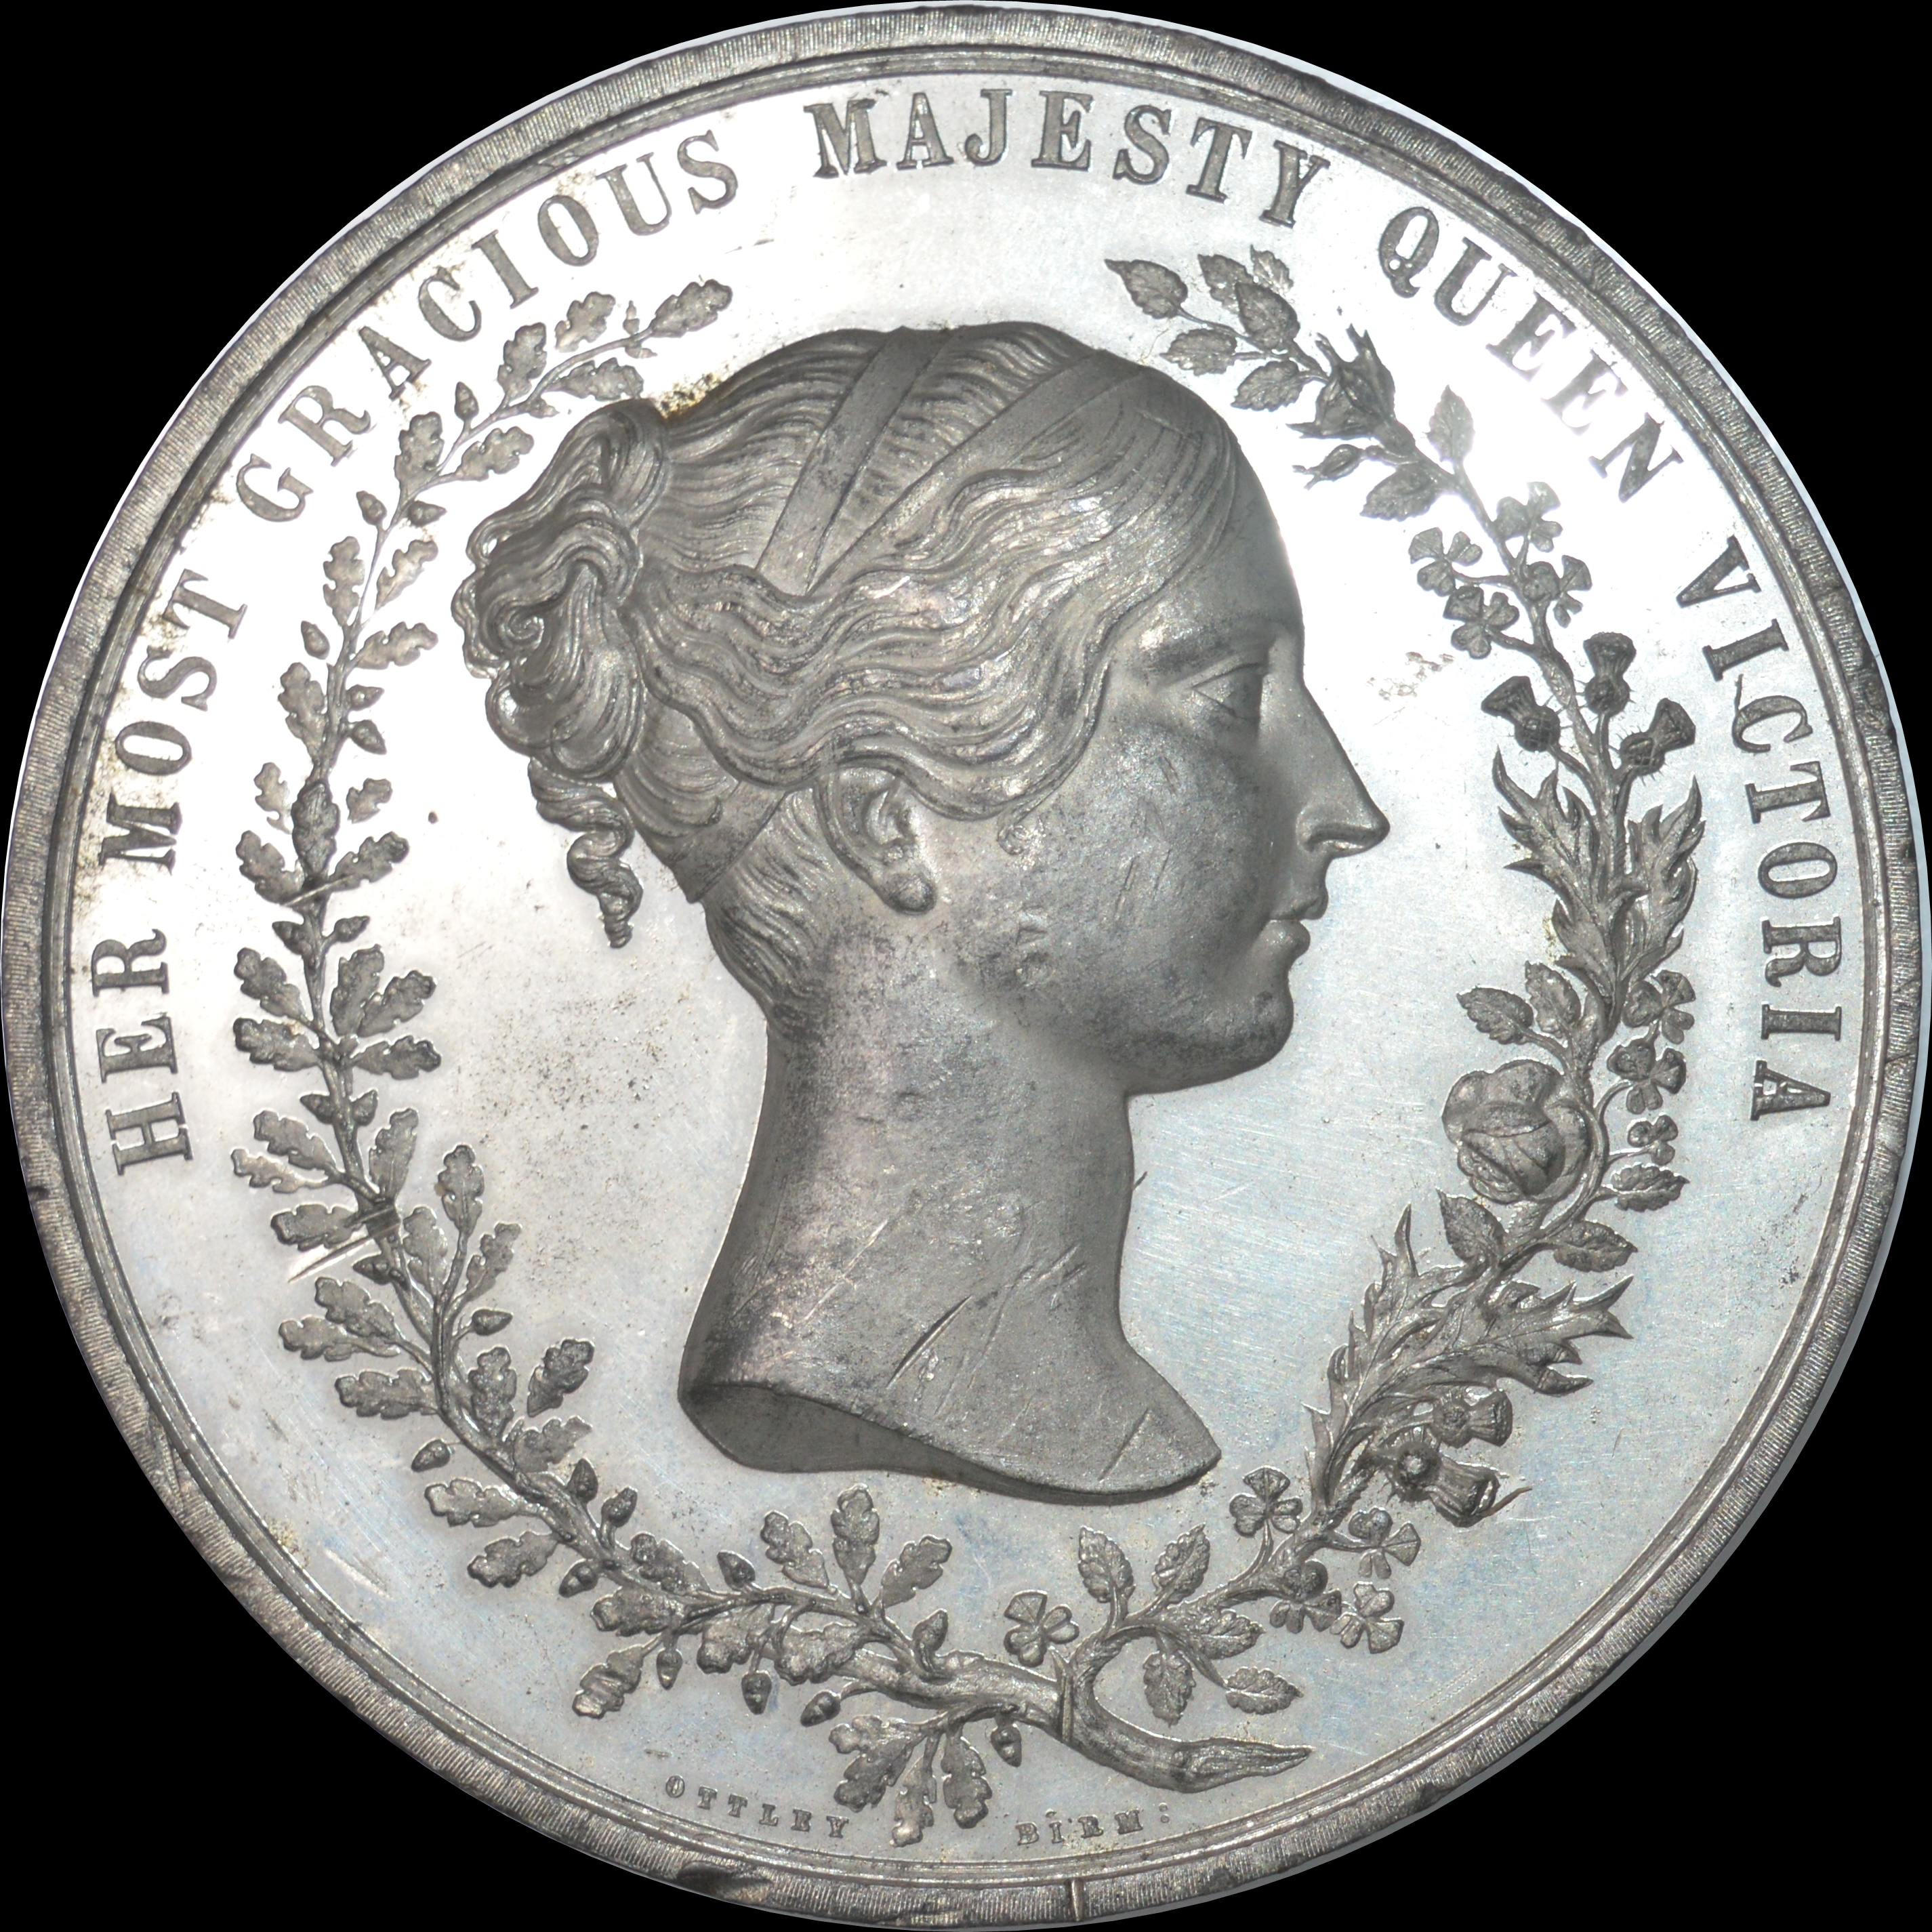 Queen Victoria - 1847 Opening of Houses of Parliament medal by Ottley